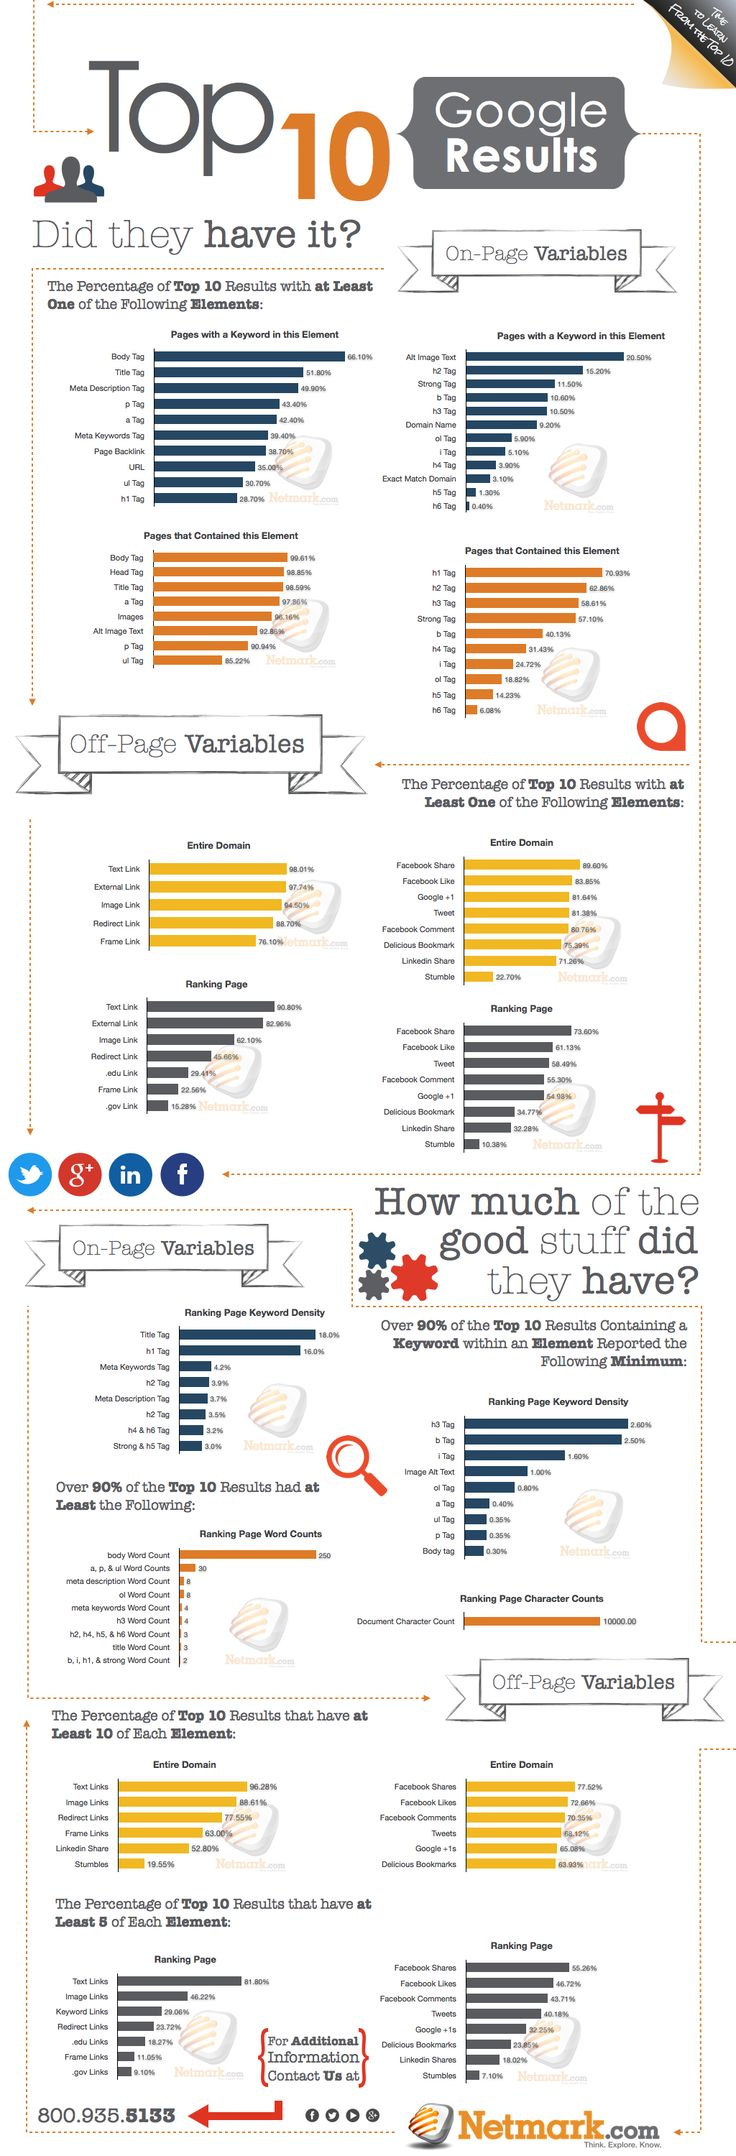 Percentage of on-page & off-page elements found in the Top Ten search results. –> [INFOGRAPHIC] Top 10 Good Results - Did they have it?